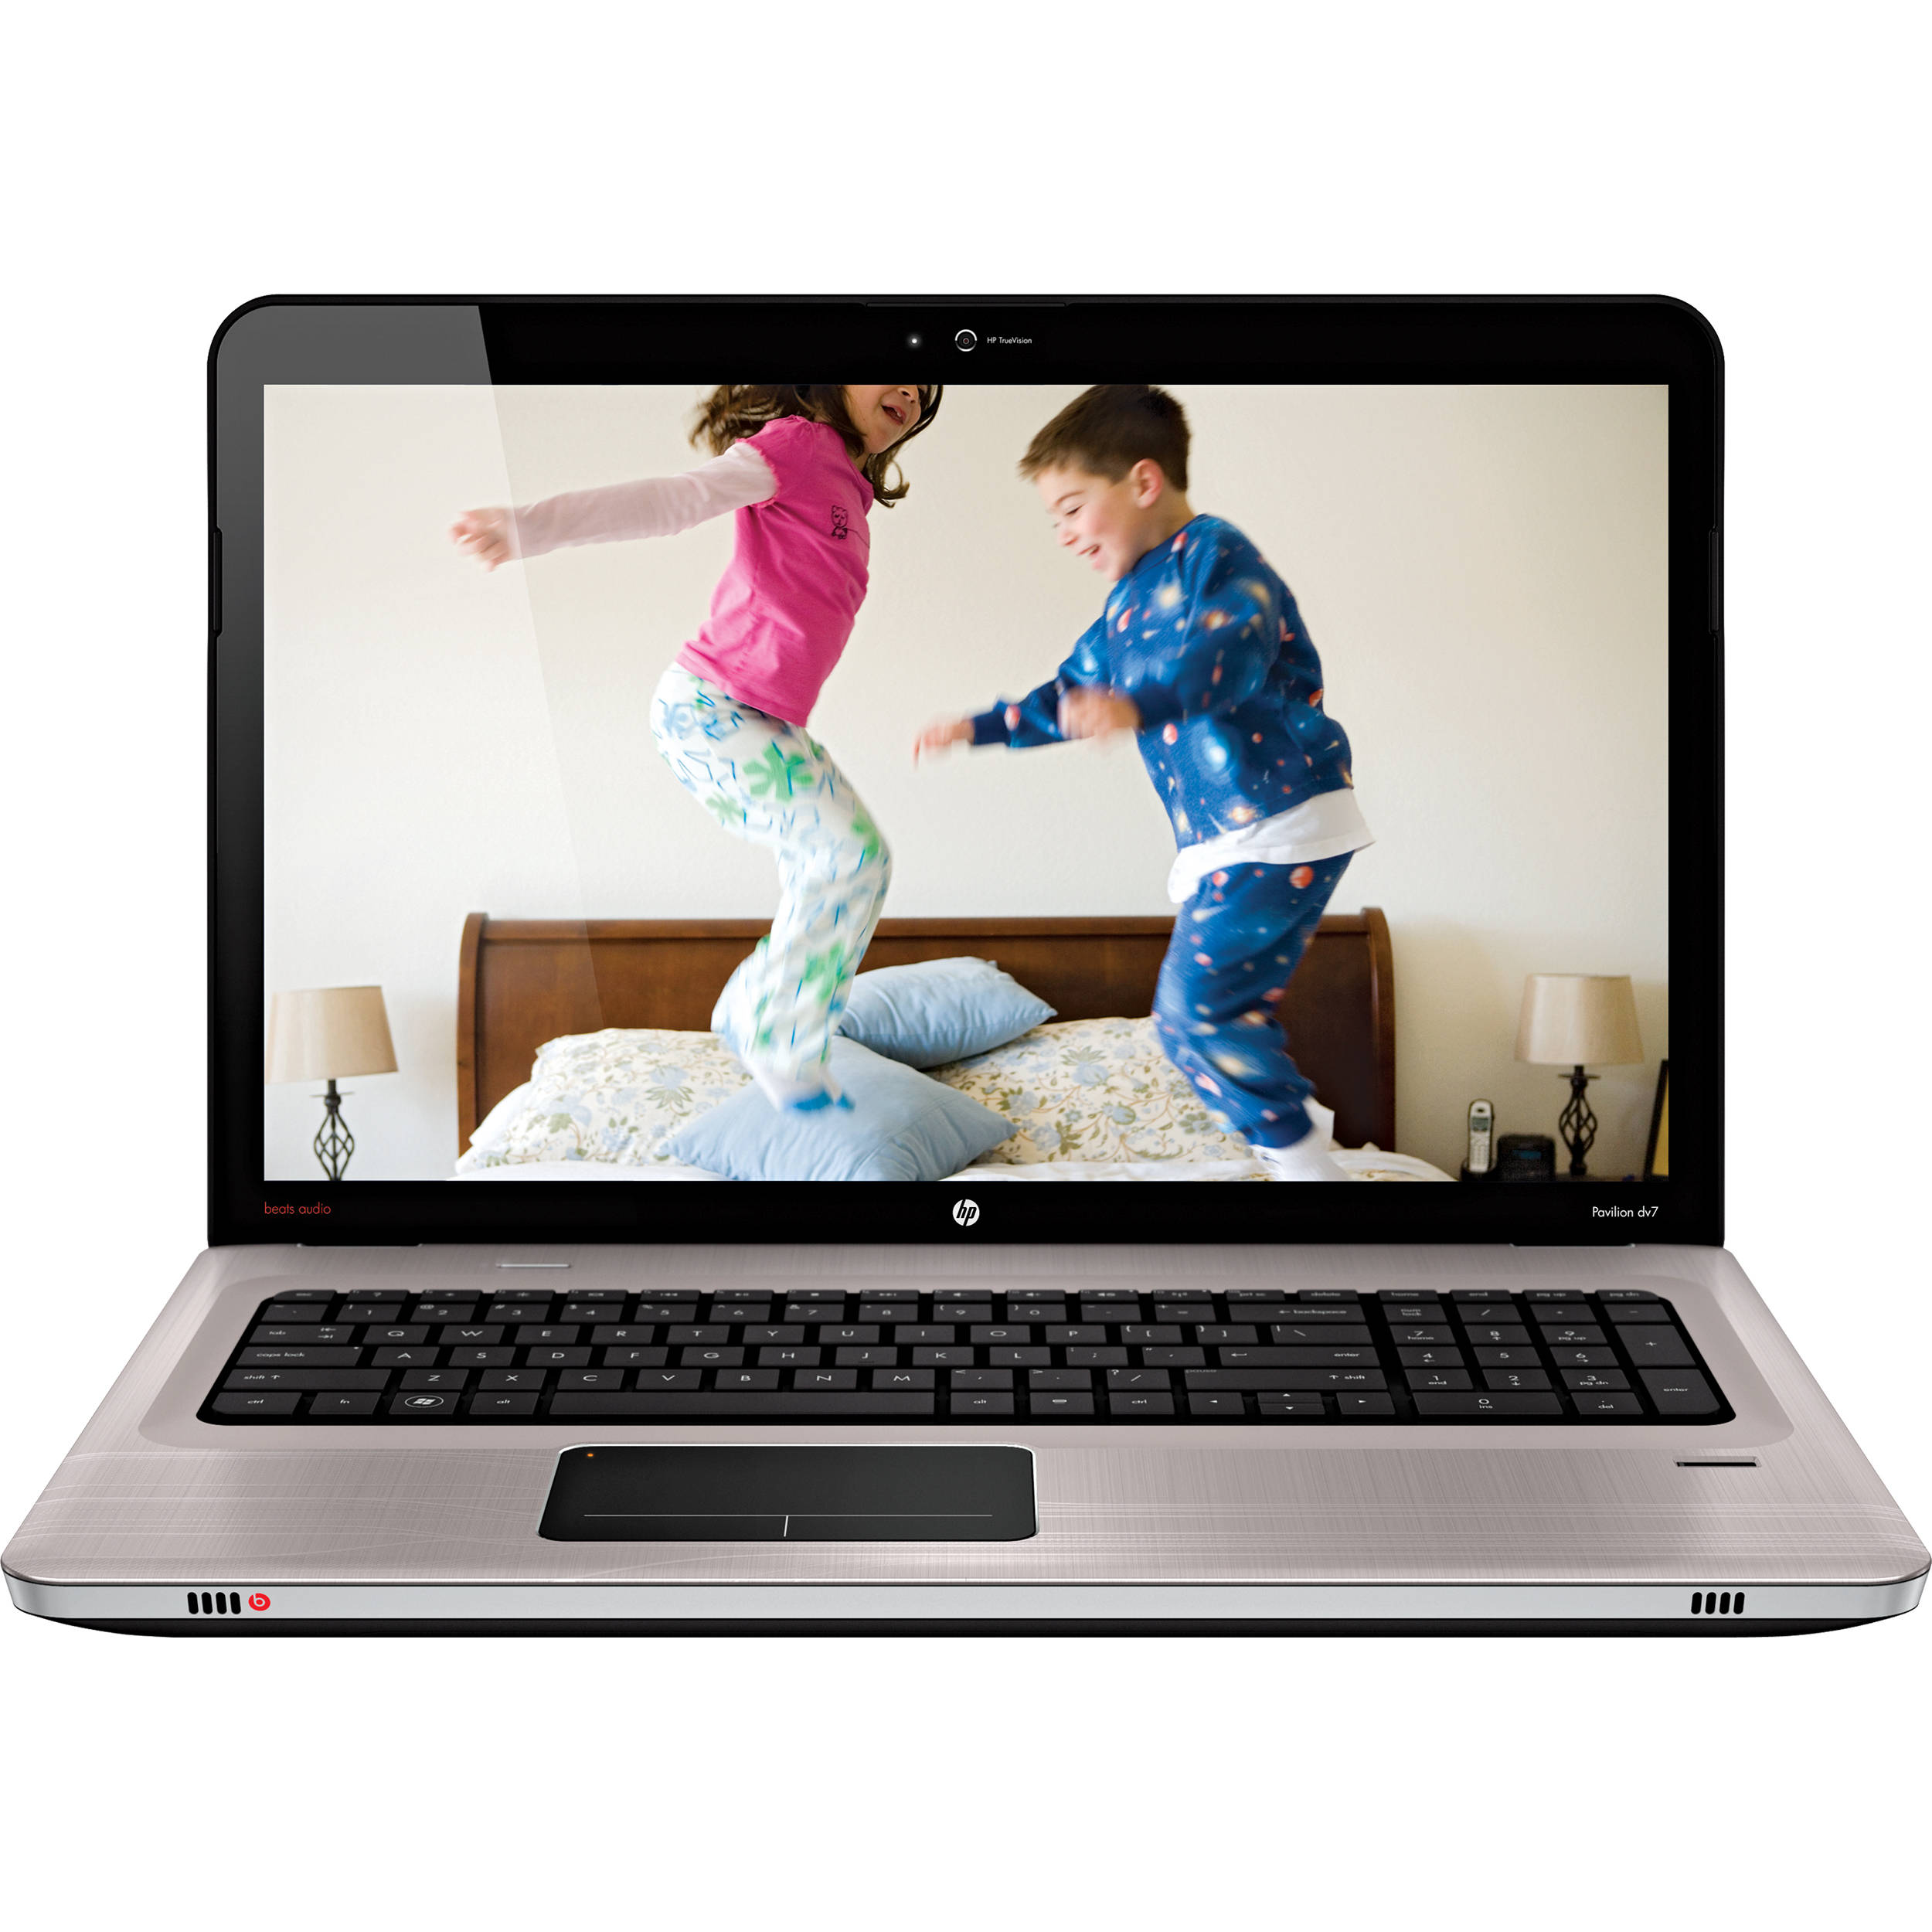 "HP Pavilion dv7-6195us Entertainment 17.3"" Notebook Computer (Steel Gray  Brushed Aluminum)"